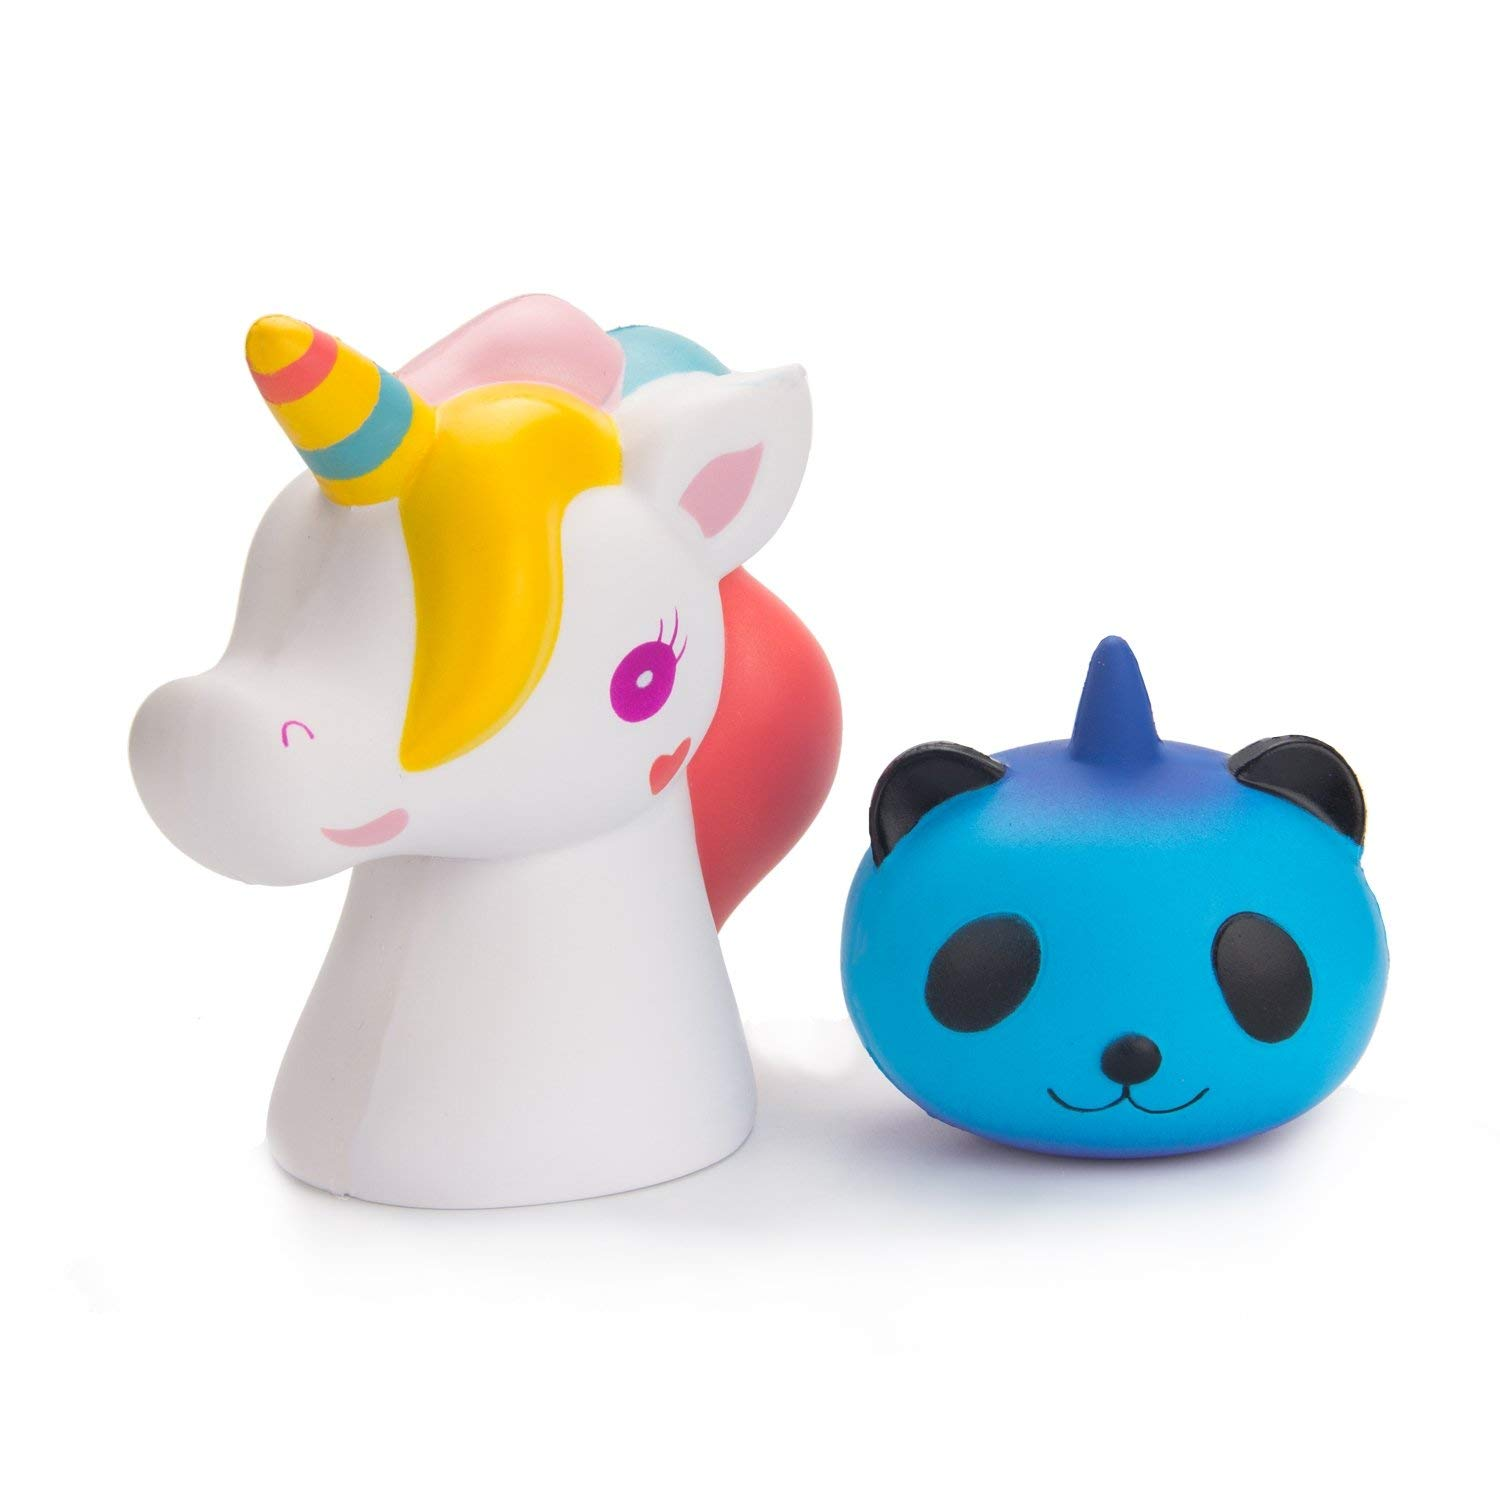 BeYumi Slow Rising Toy, Jumbo Unicorn + Starry Unicorn Panda Squishy Toy, Cream Scented Simulation Cute Unicorn Squeeze Toys for Collection Gift, Decorative props Large or Stress Relief